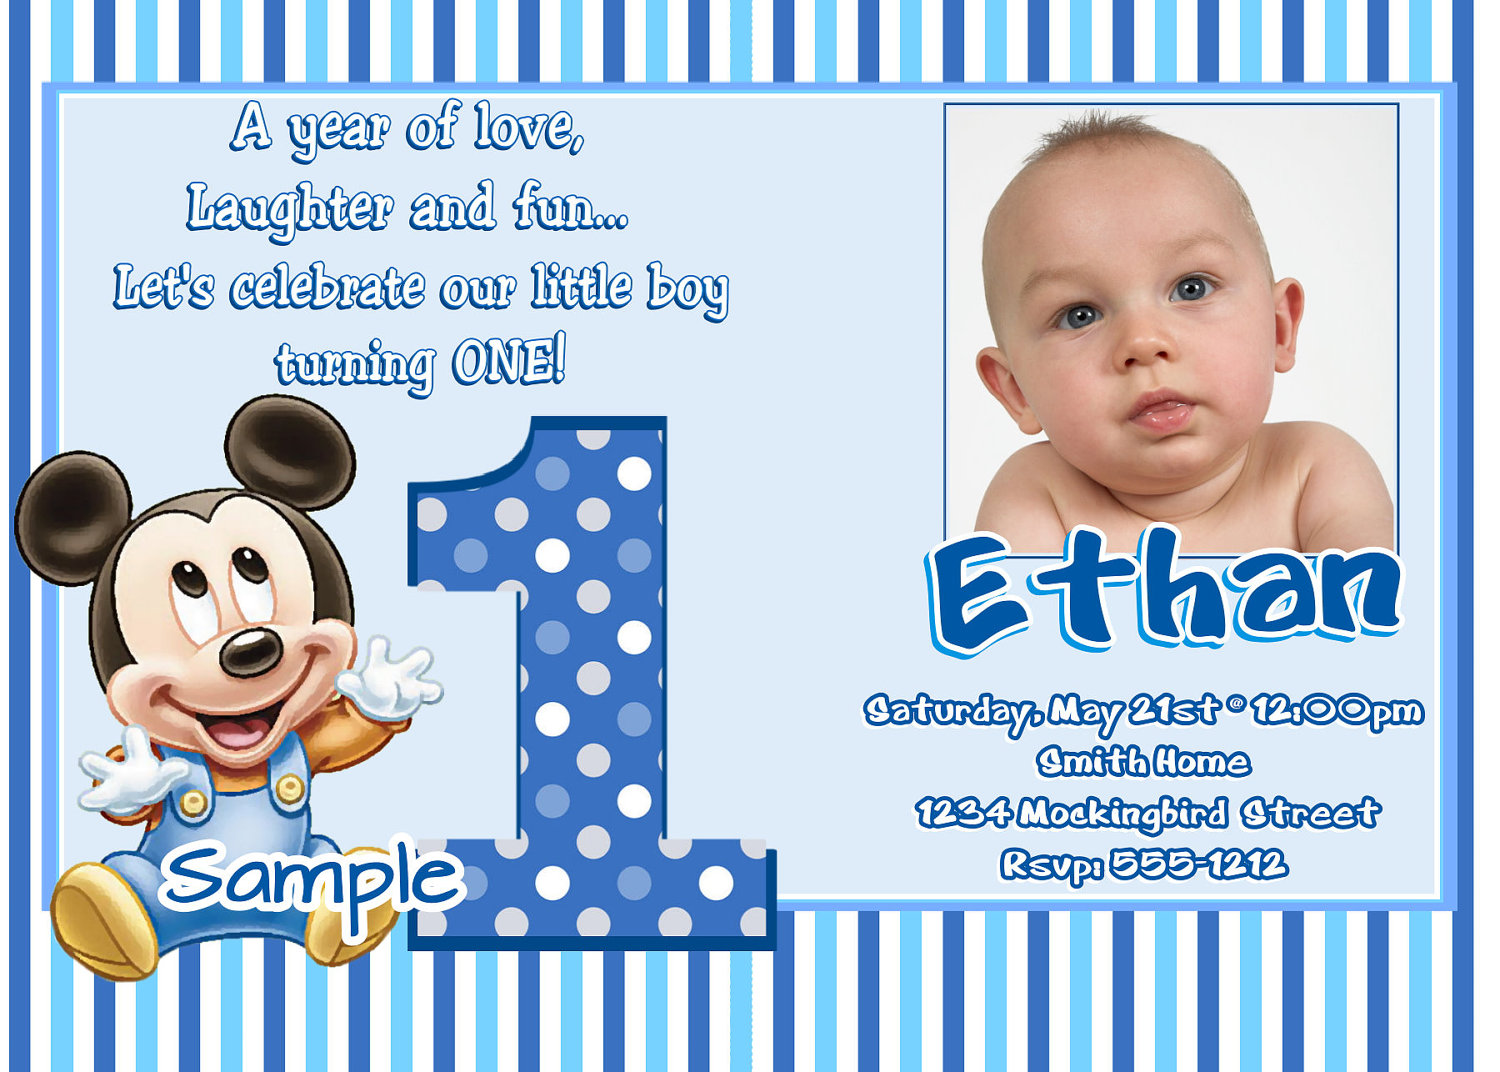 baby birthday invitation templates ; baby-birthday-invitation-template-free-1st-birthday-invitation-maker-free-st-birthday-invitation-maker-sampl-on-once-upon-a-time-princess-st-birthday-invi